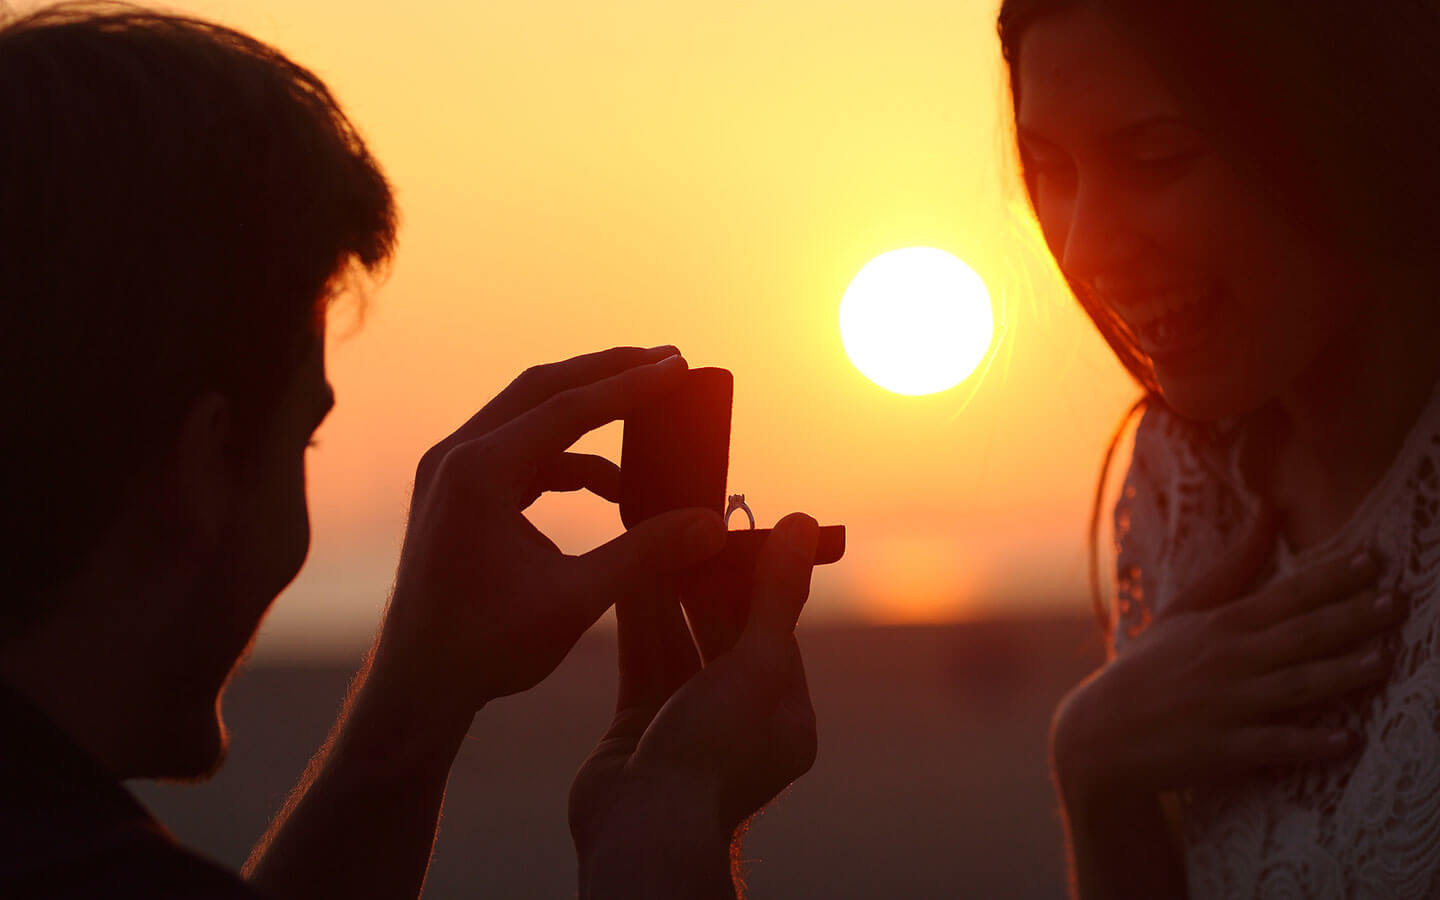 A romantic sunset proposal